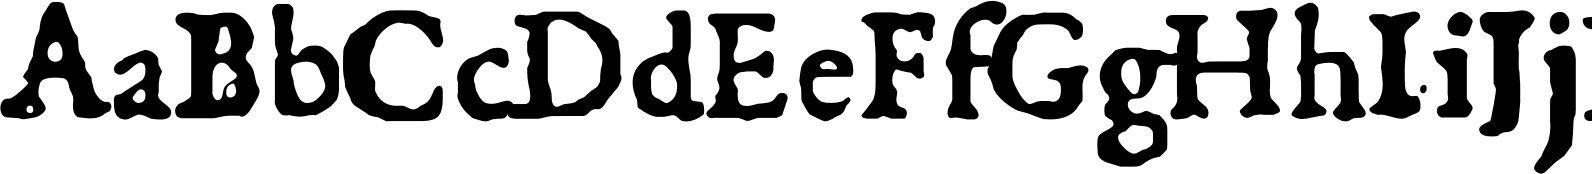 1651 Alchemy Normal Font